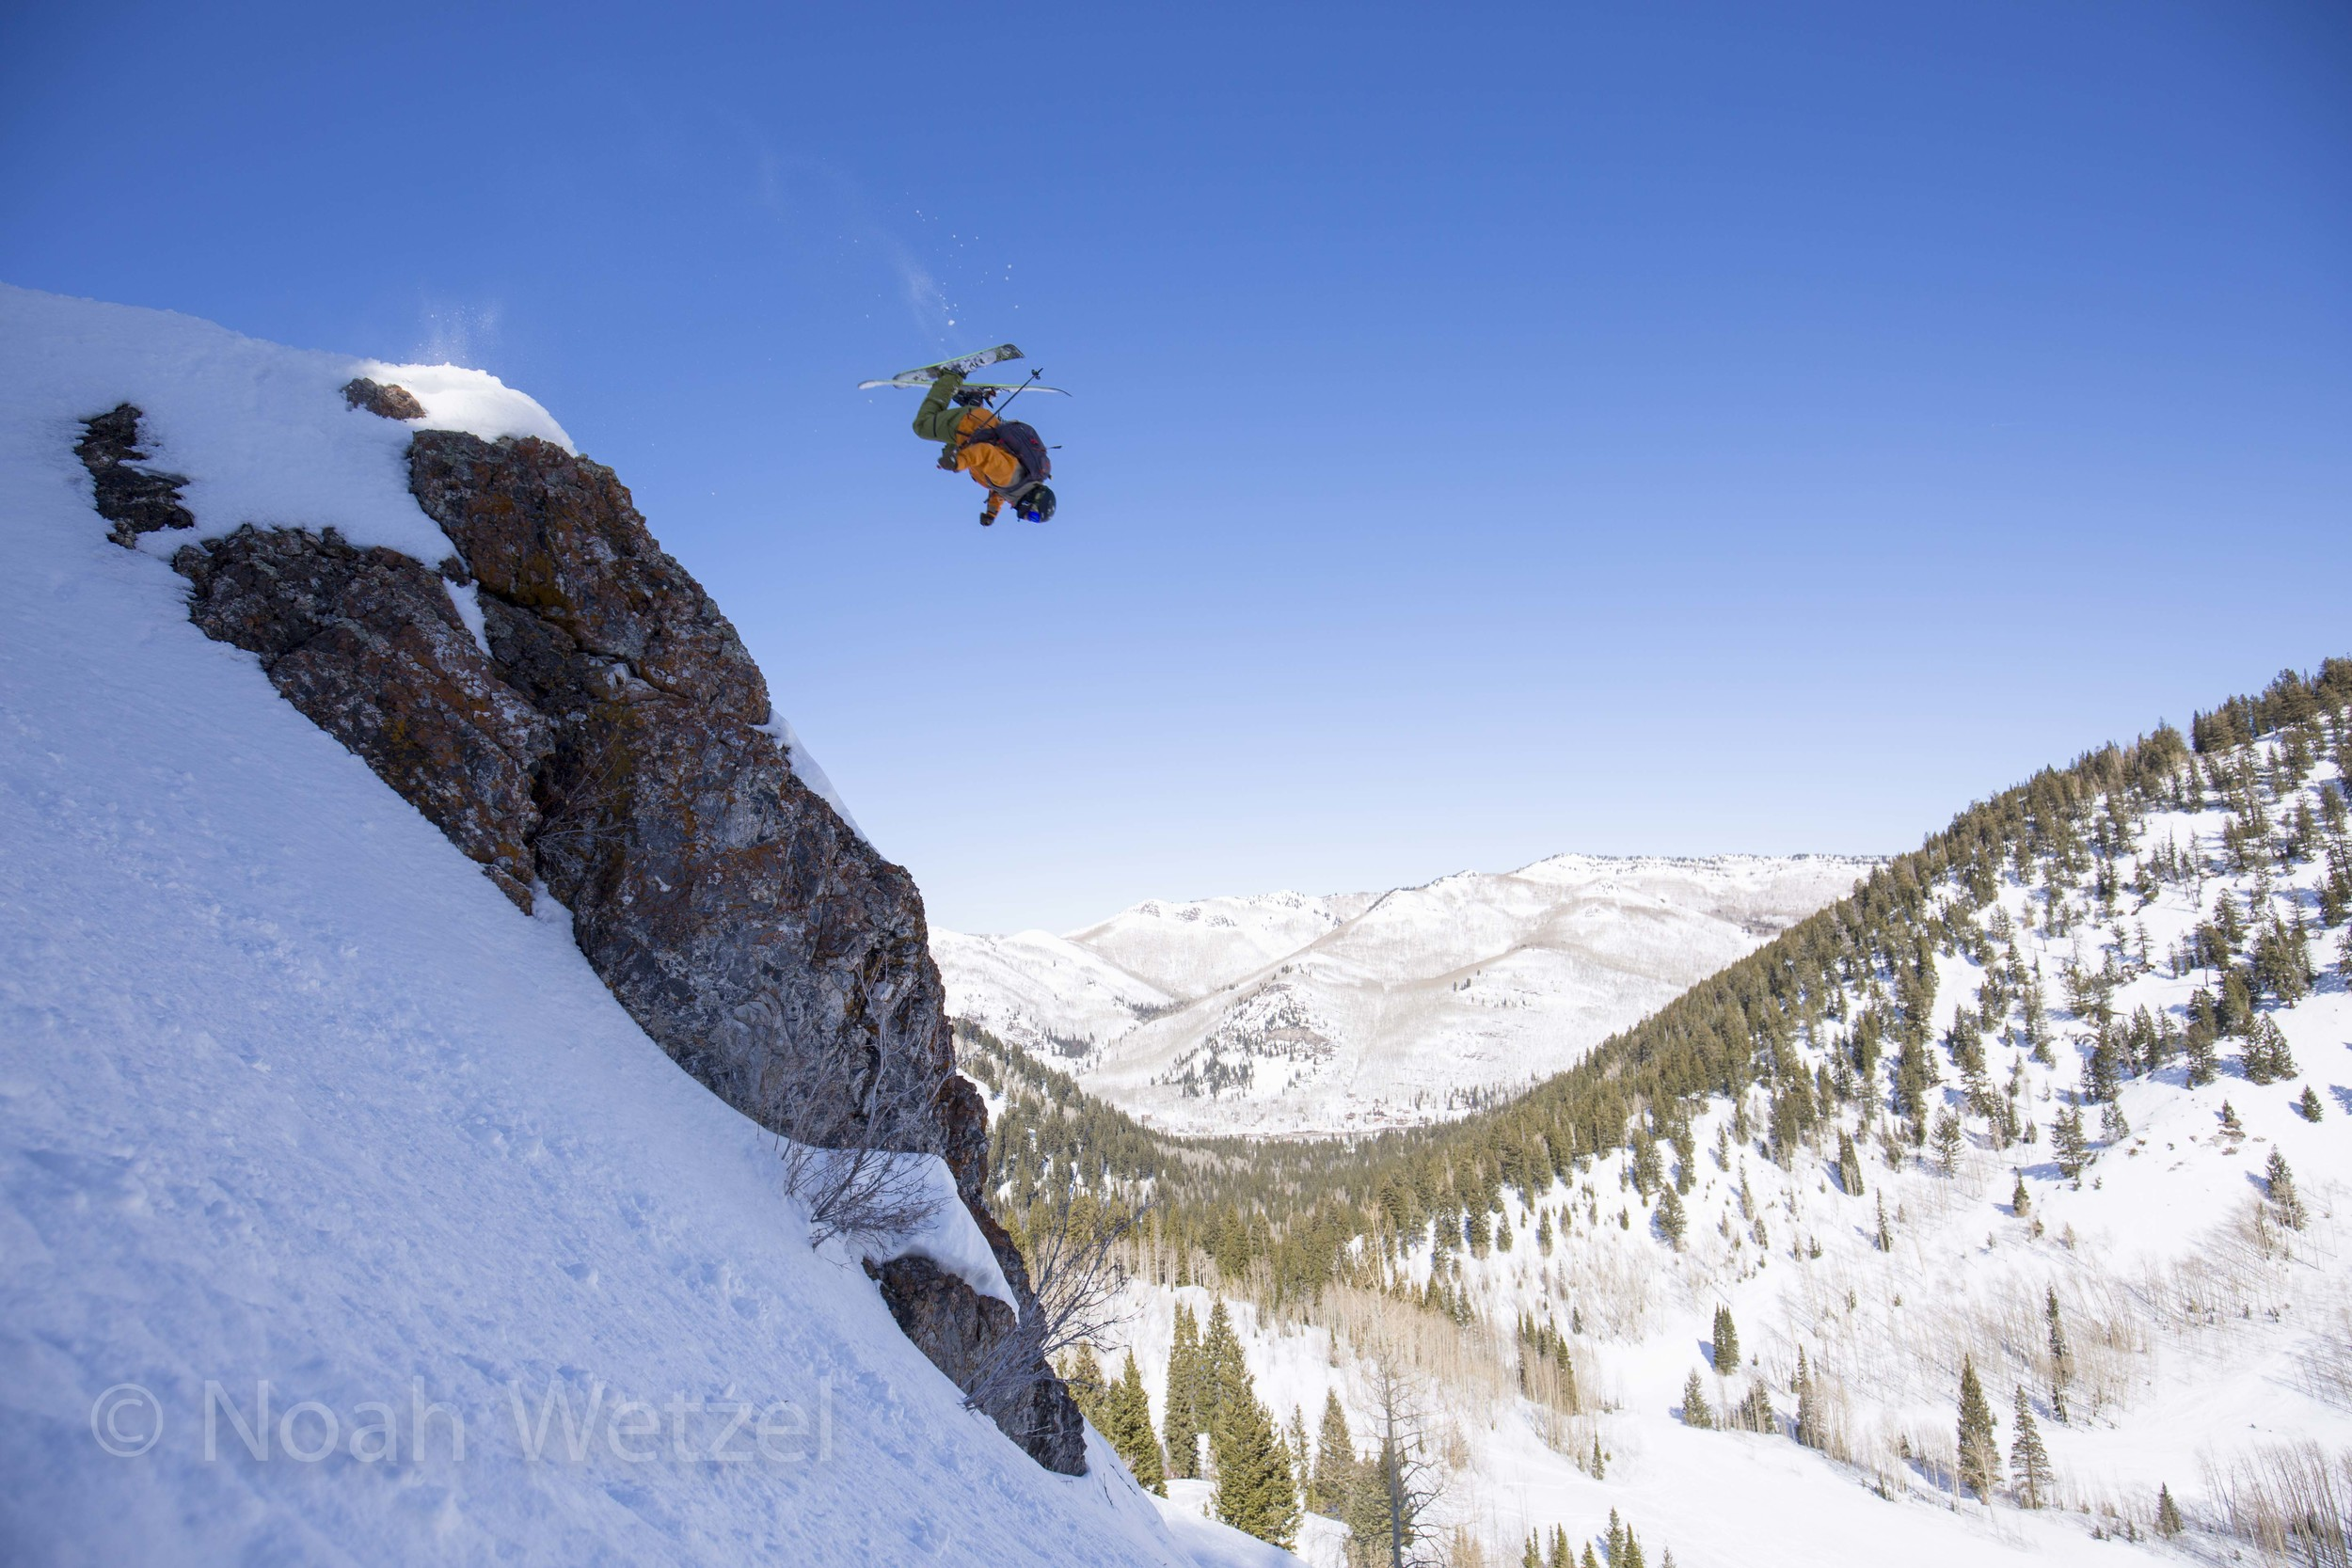 Willie Nelson airing out a backy on day 3 of the Ski City Shootout. Solitude Mountain Resort, Utah.